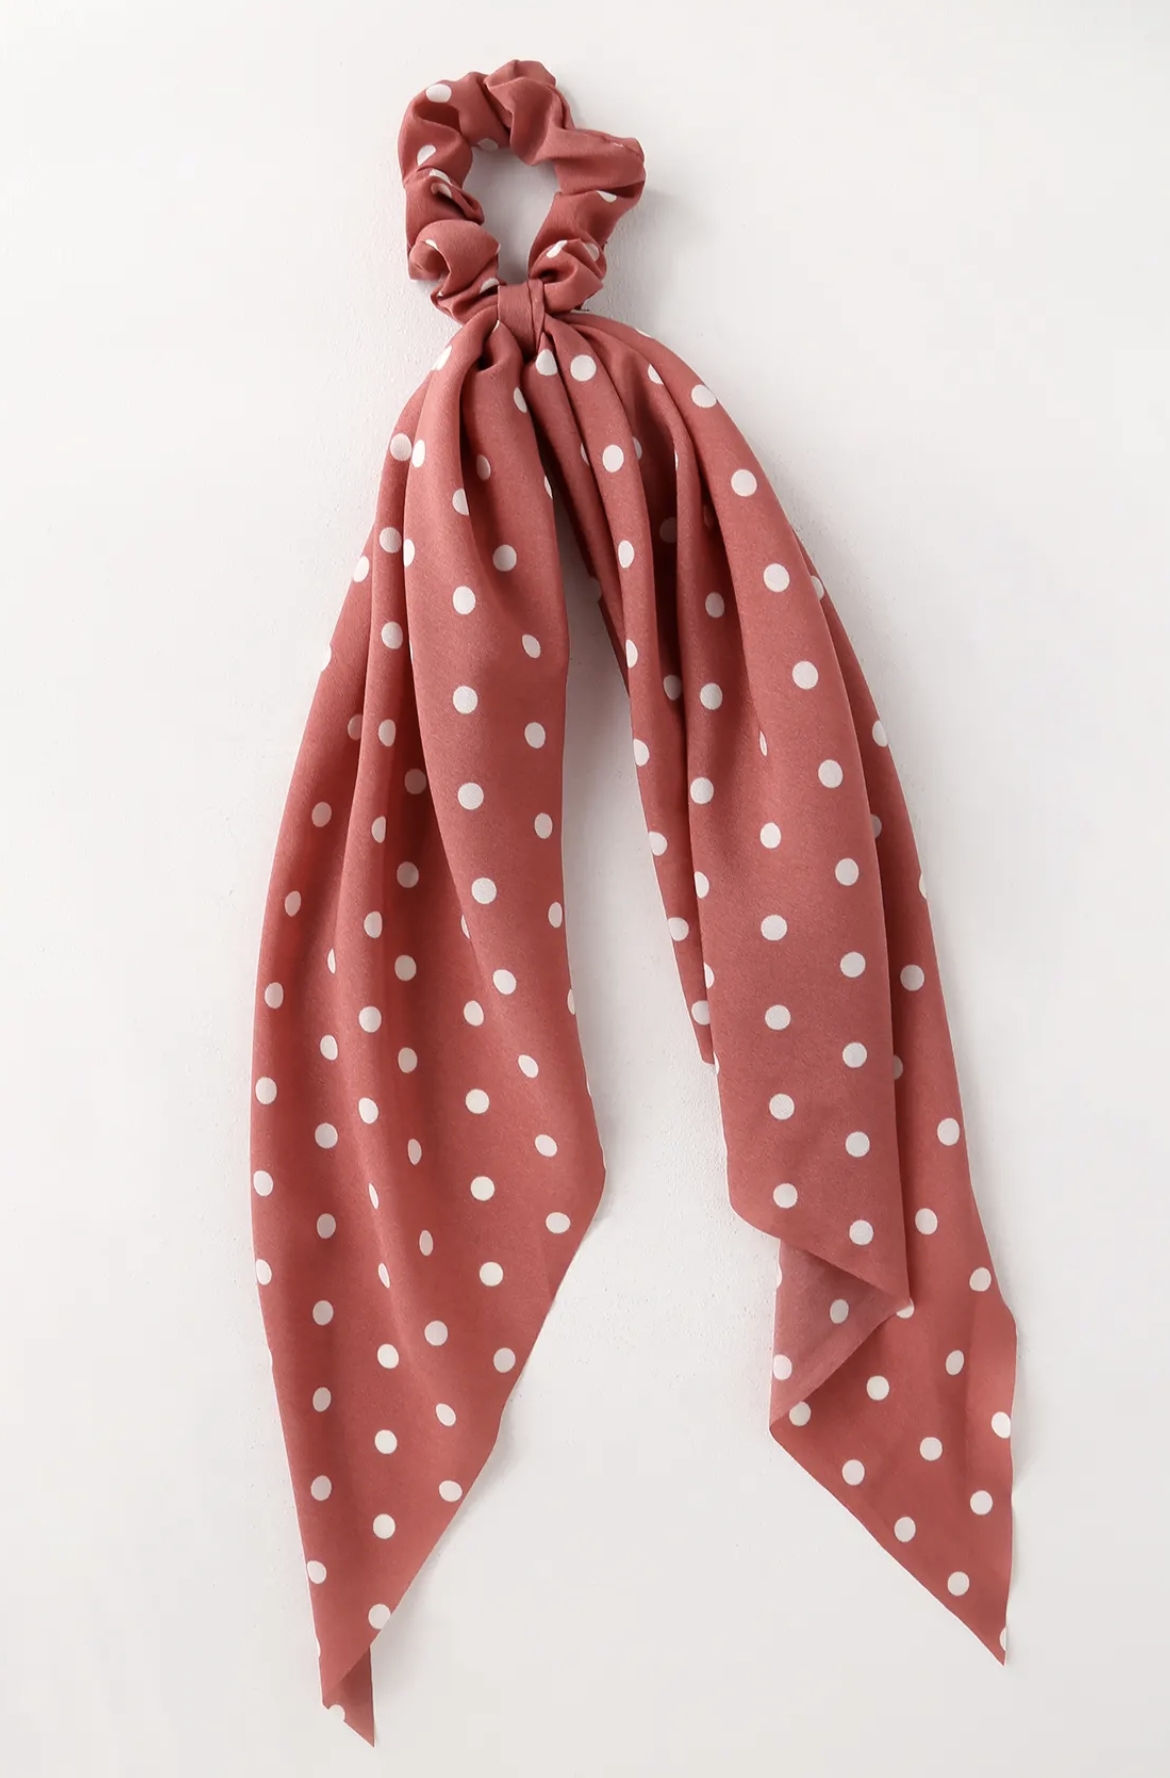 Polka Dot Pink Hair Scarf | Hair Accessories | Shop Miranda Schroeder Blog